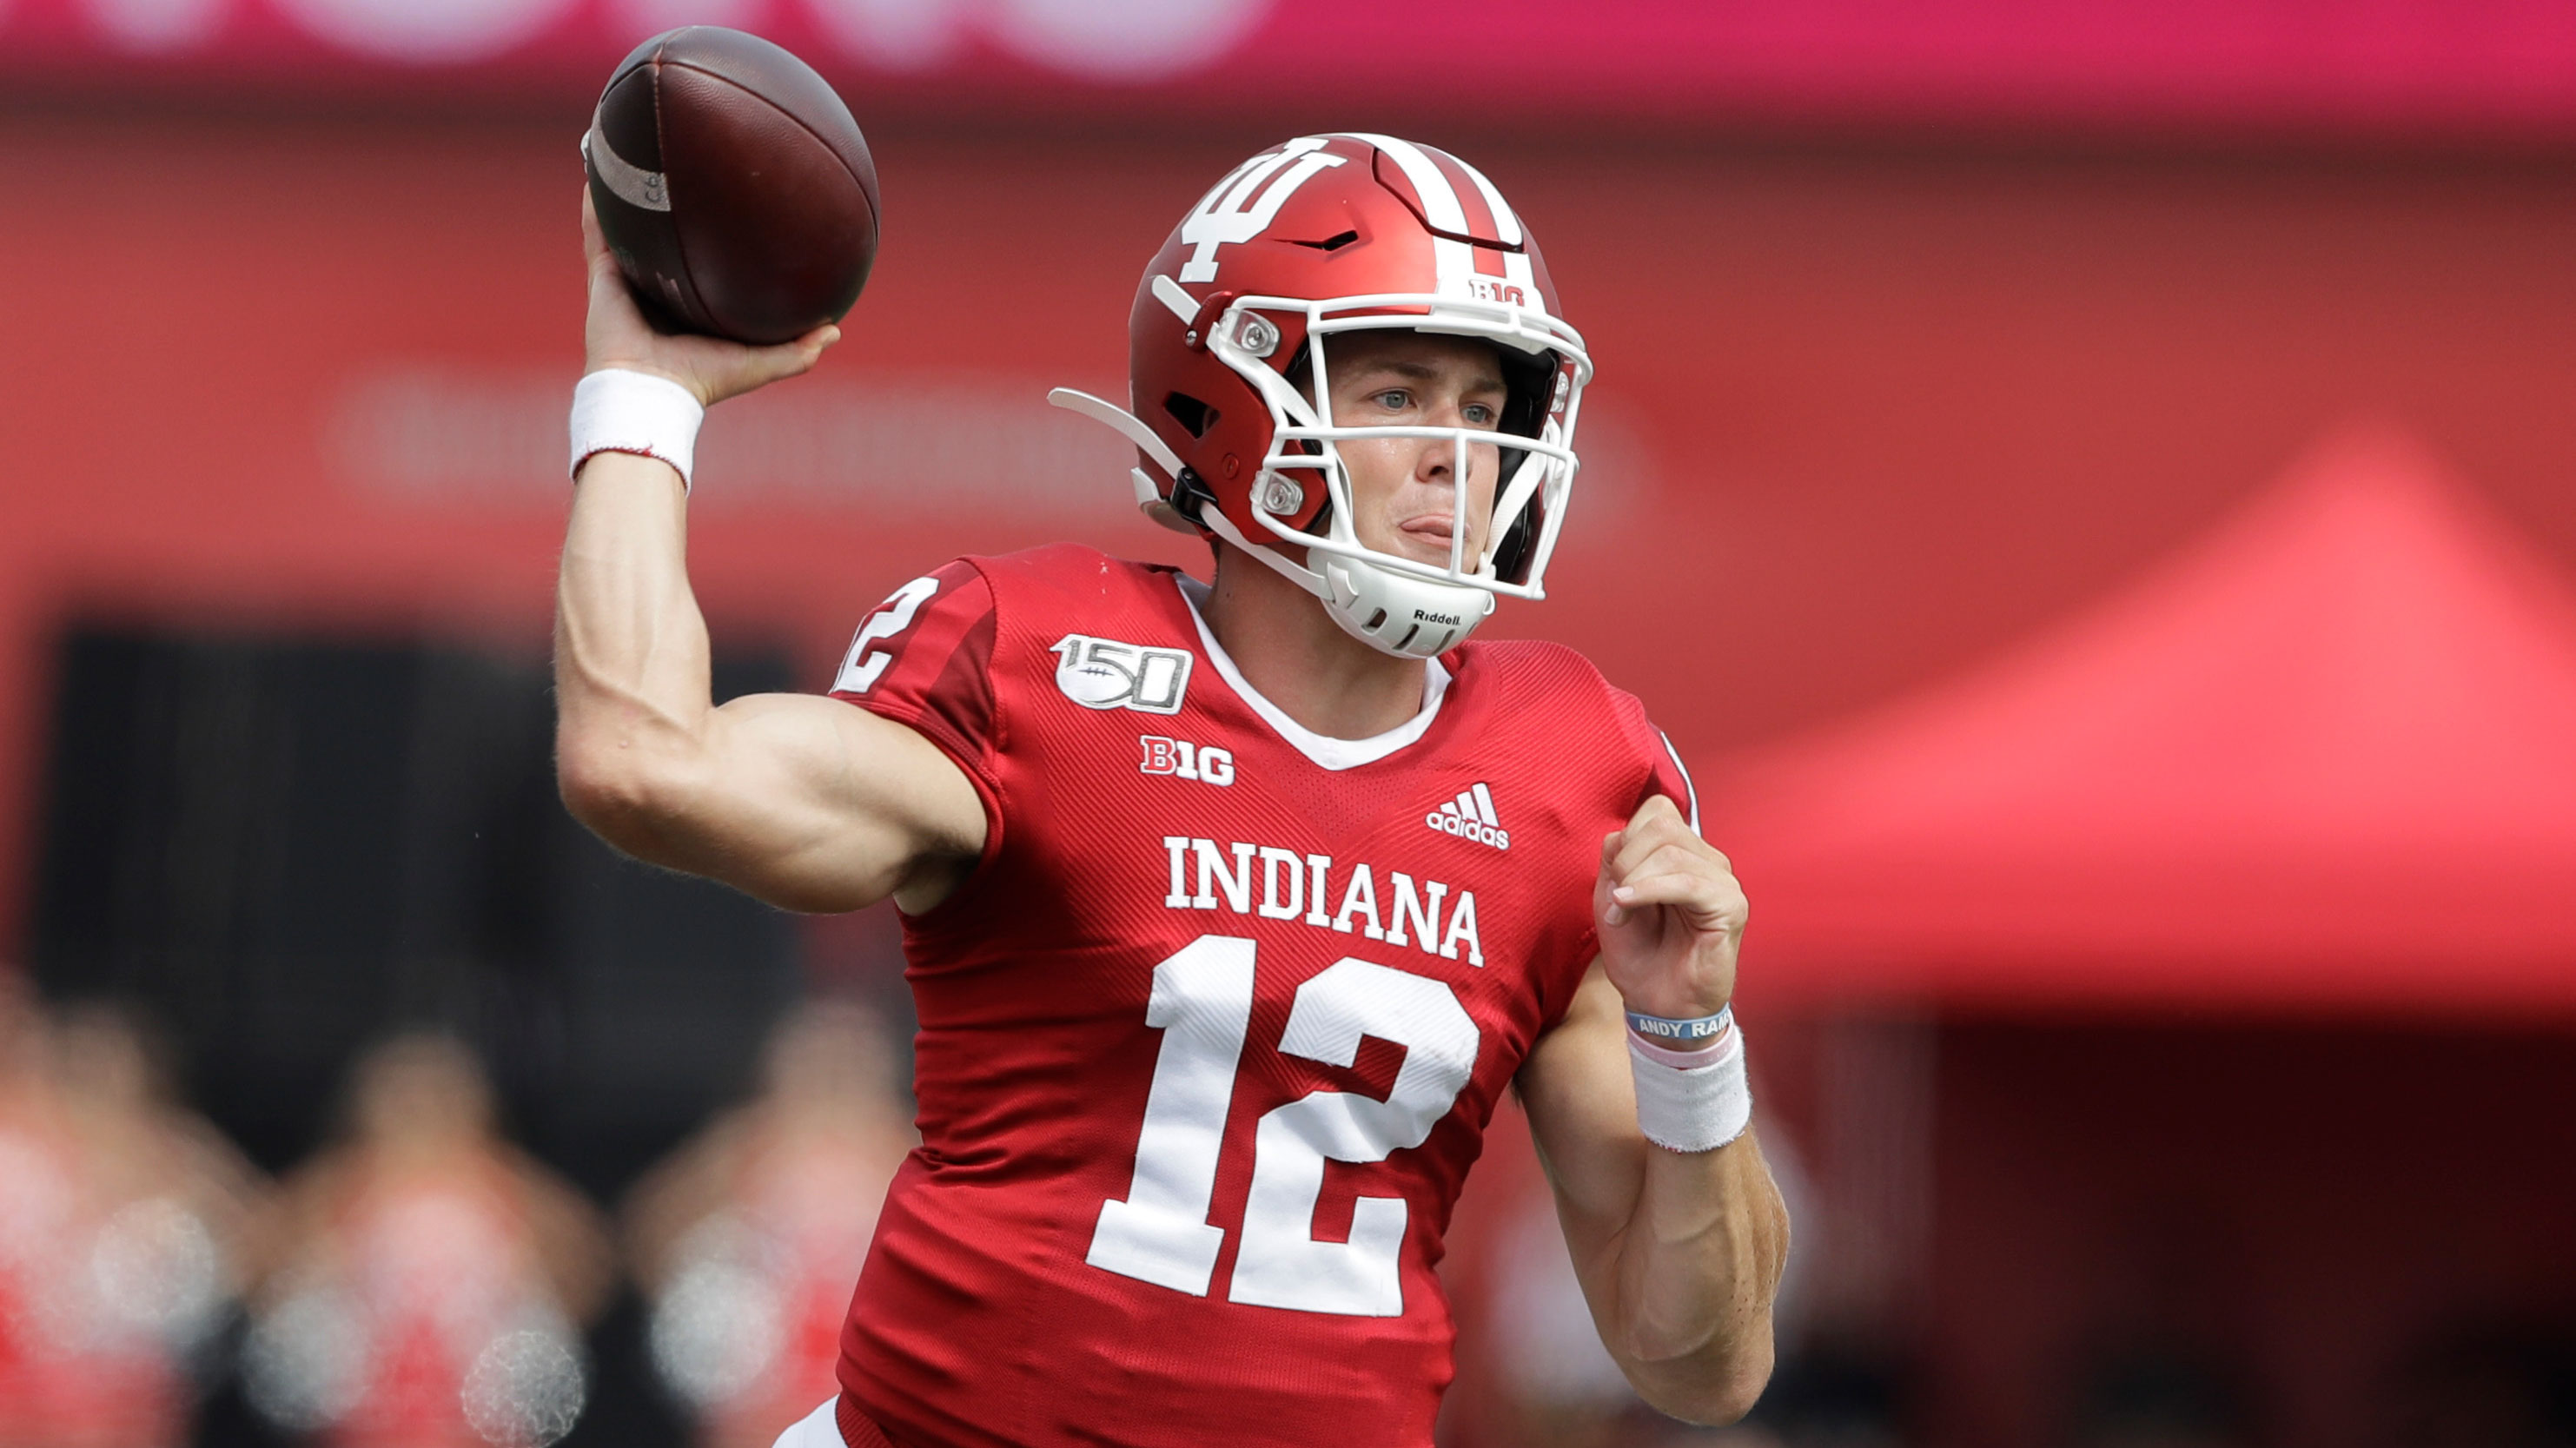 Ramsey throws three touchdowns in Indiana's 38-3 win over UConn